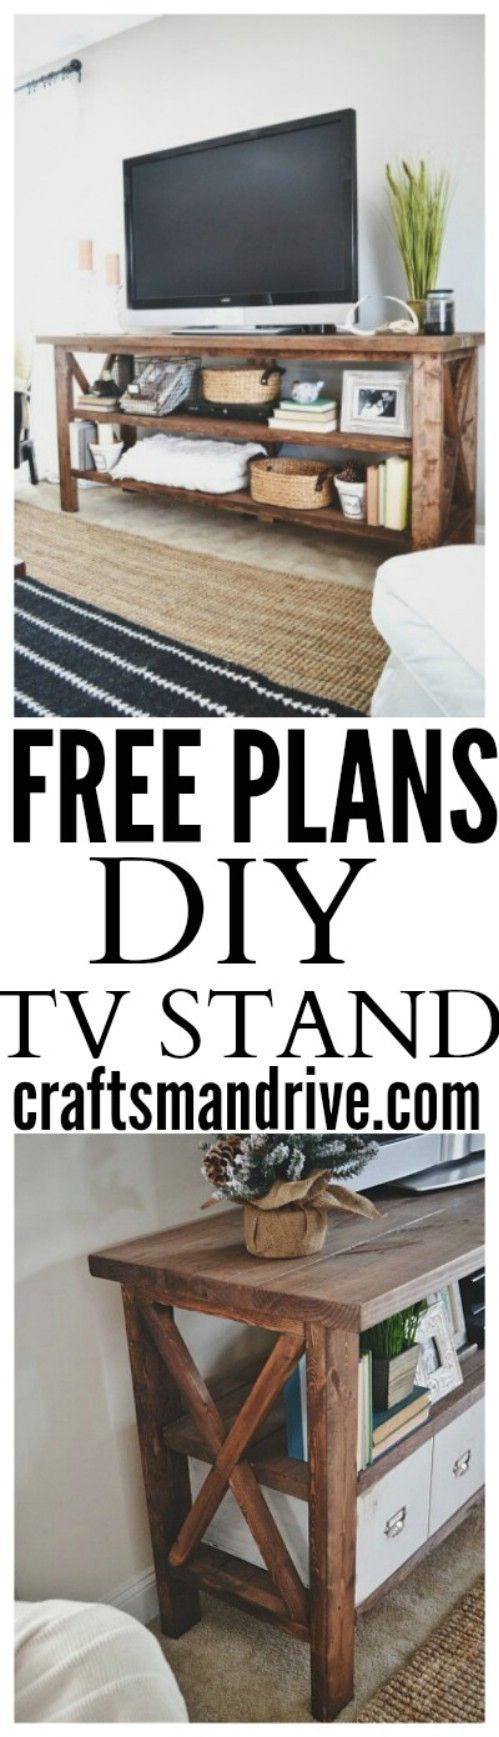 Media console - 50 Decorative Rustic Storage Projects For a Beautifully Organized Home